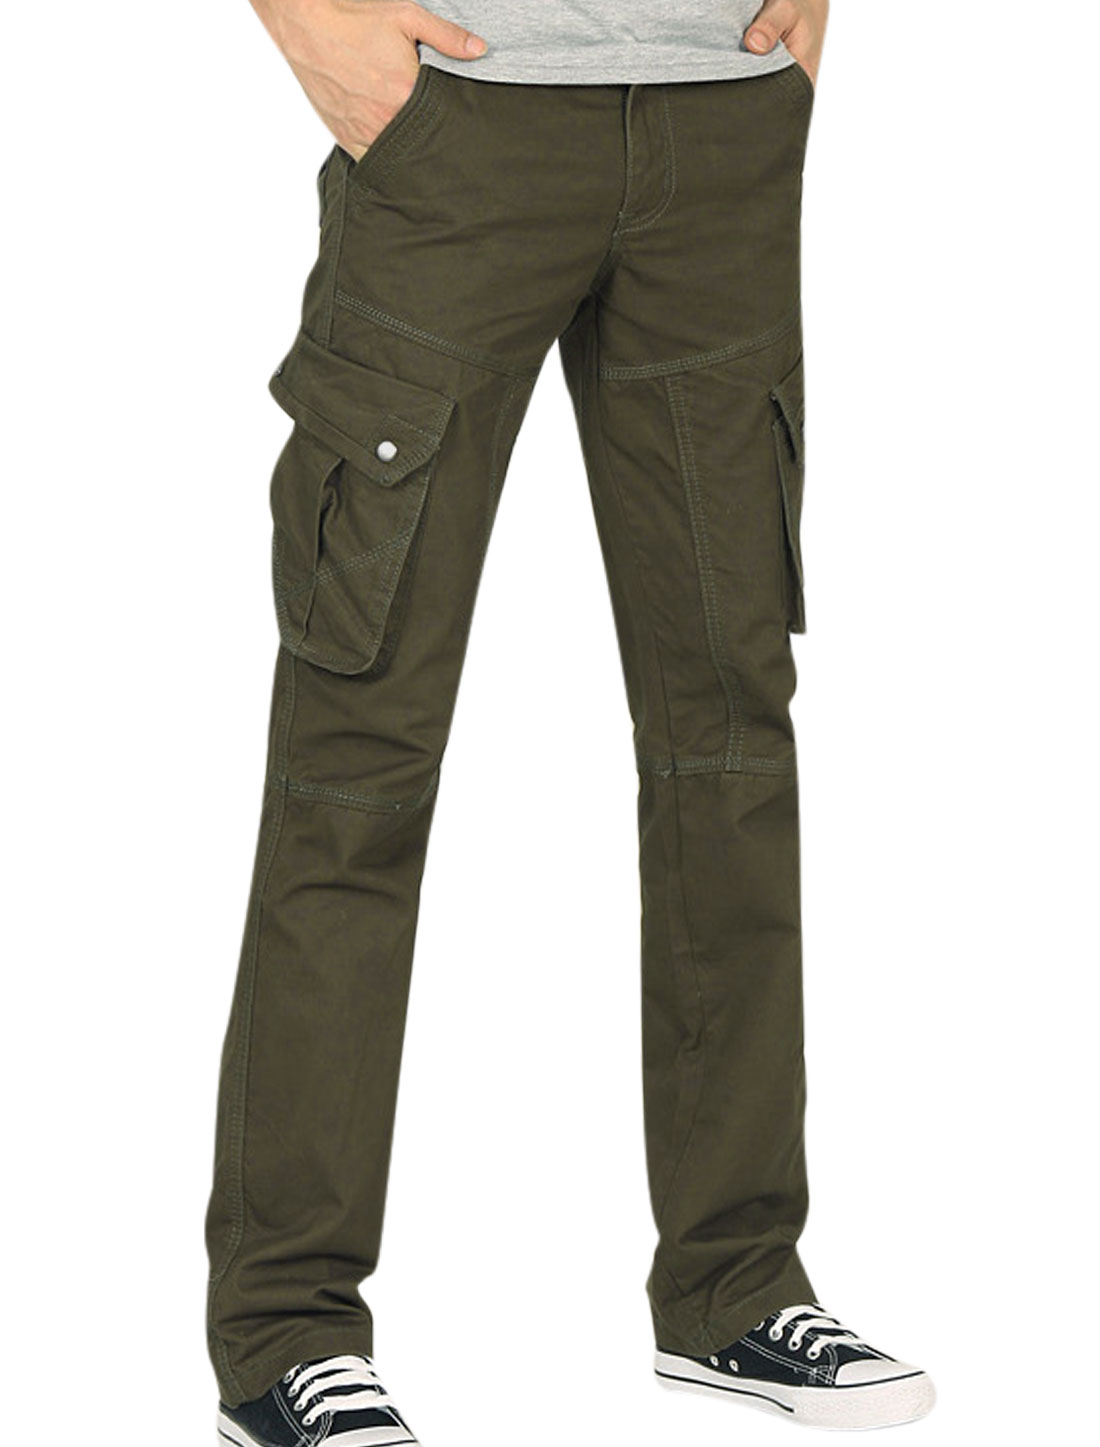 Man New Style Zip Closed Flap Pocket Design Army Green Cargo Pants W34